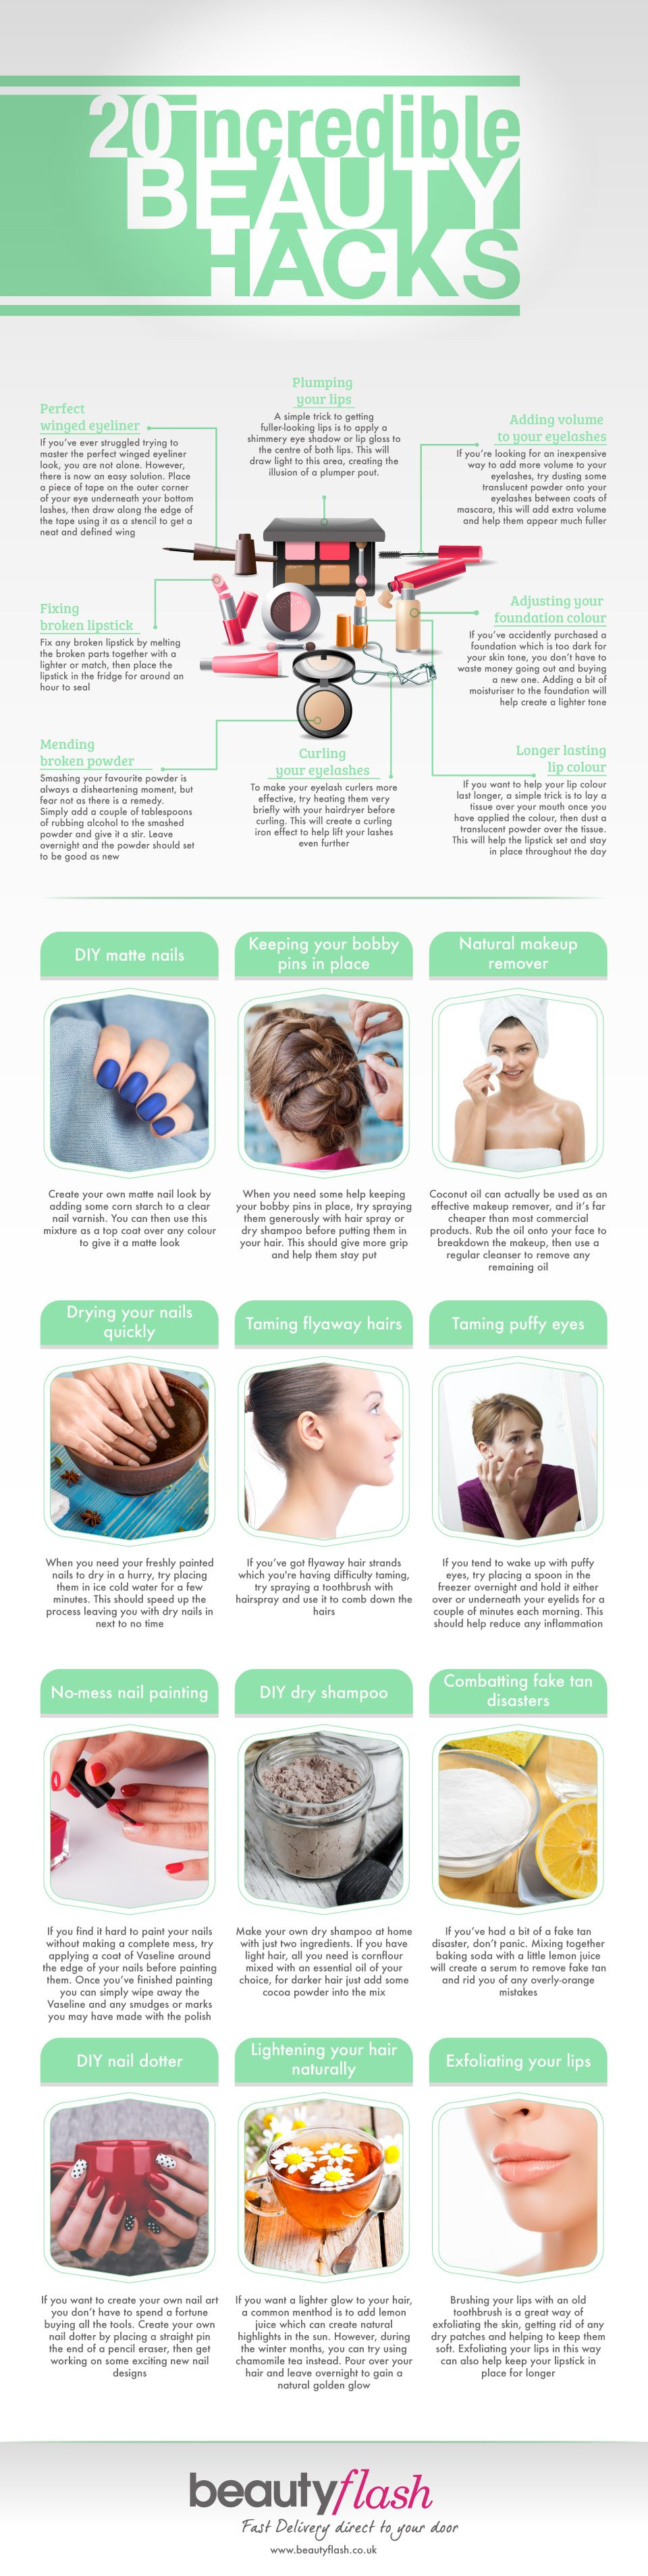 20 Incredible Beauty Hacks #Infographic